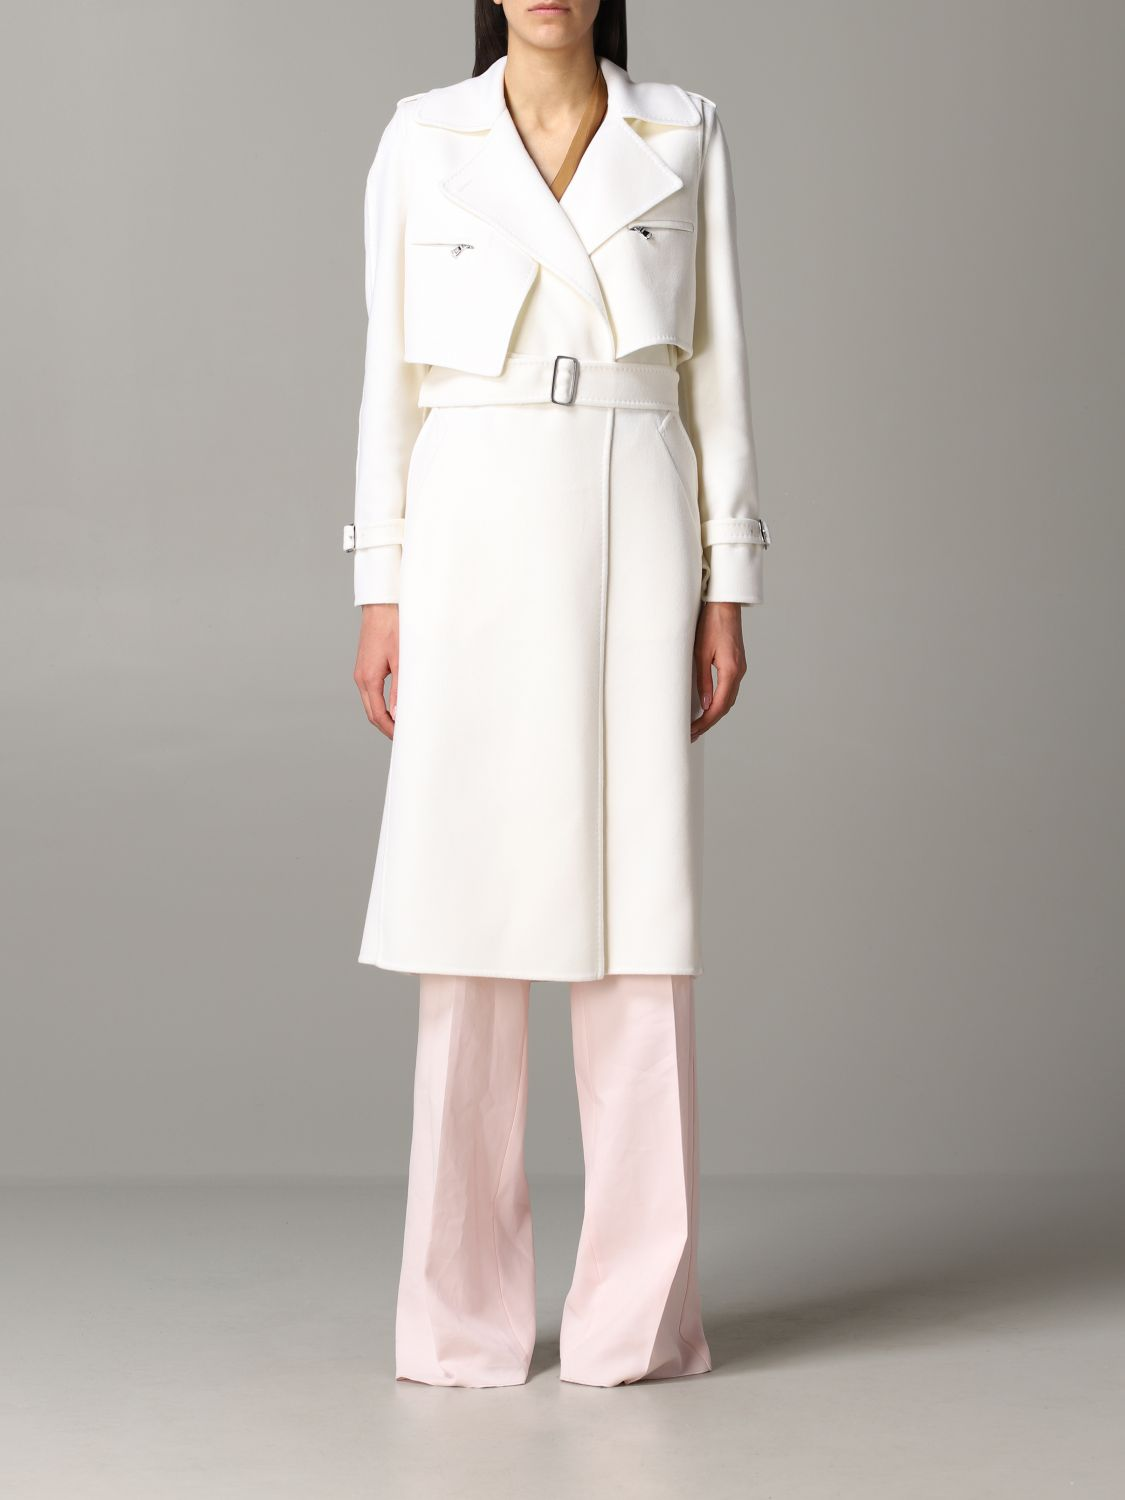 Max Mara Gianna dressing gown coat with removable vest white 1